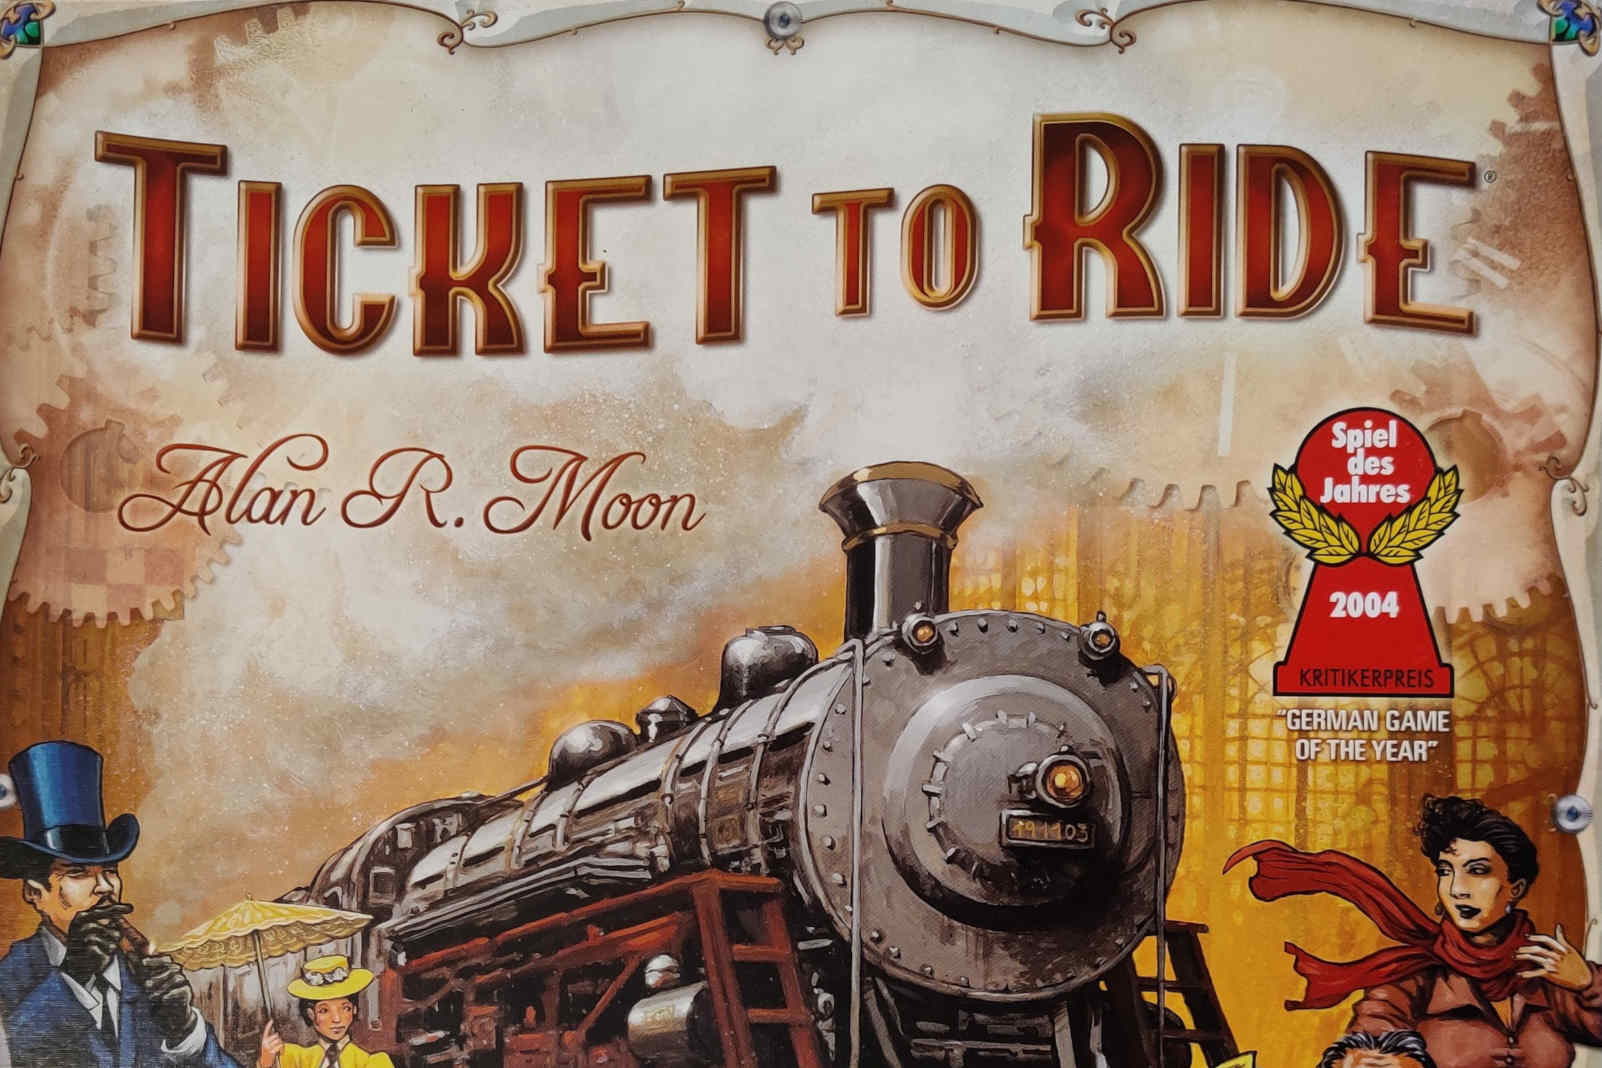 Ticket to Ride board game cover